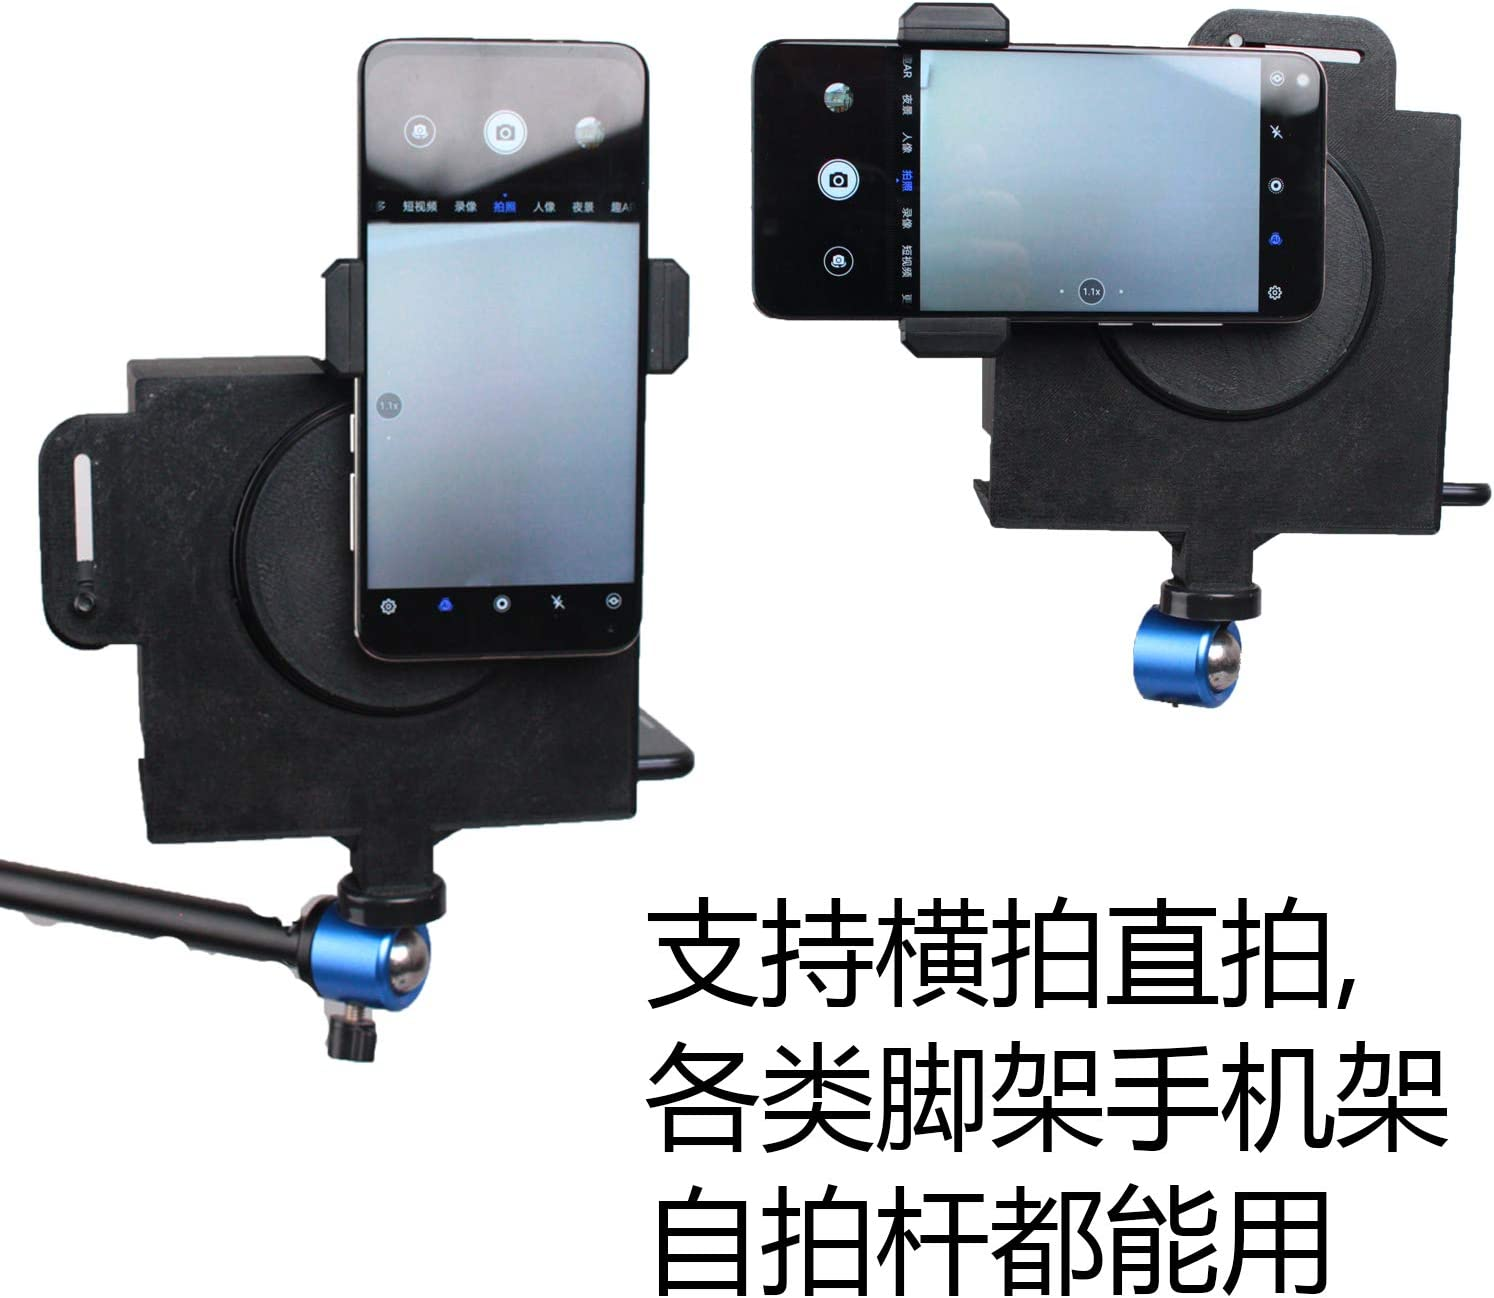 Mini Teleprompter Portátil para Todos los iPhone 7 8 9 X Android ...